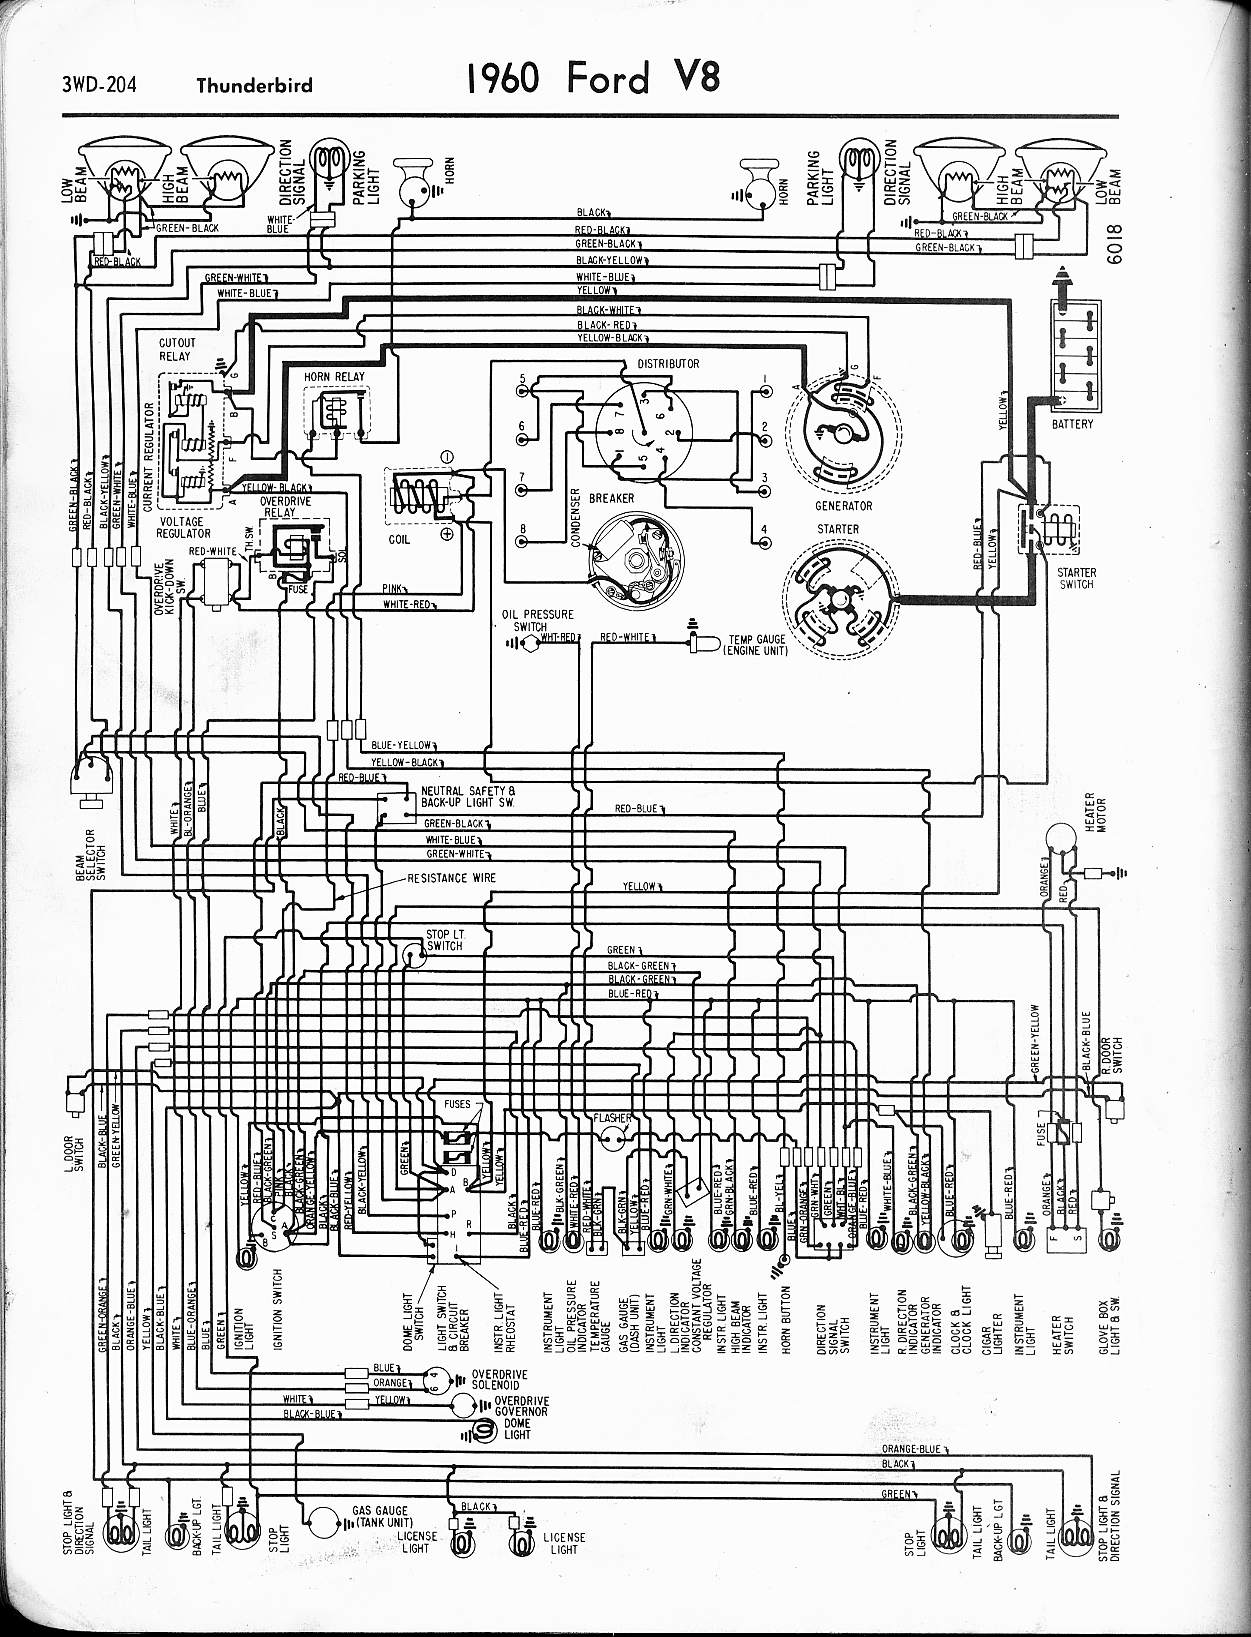 MWire5765 204 57 65 ford wiring diagrams 1968 ford wiring diagrams at arjmand.co